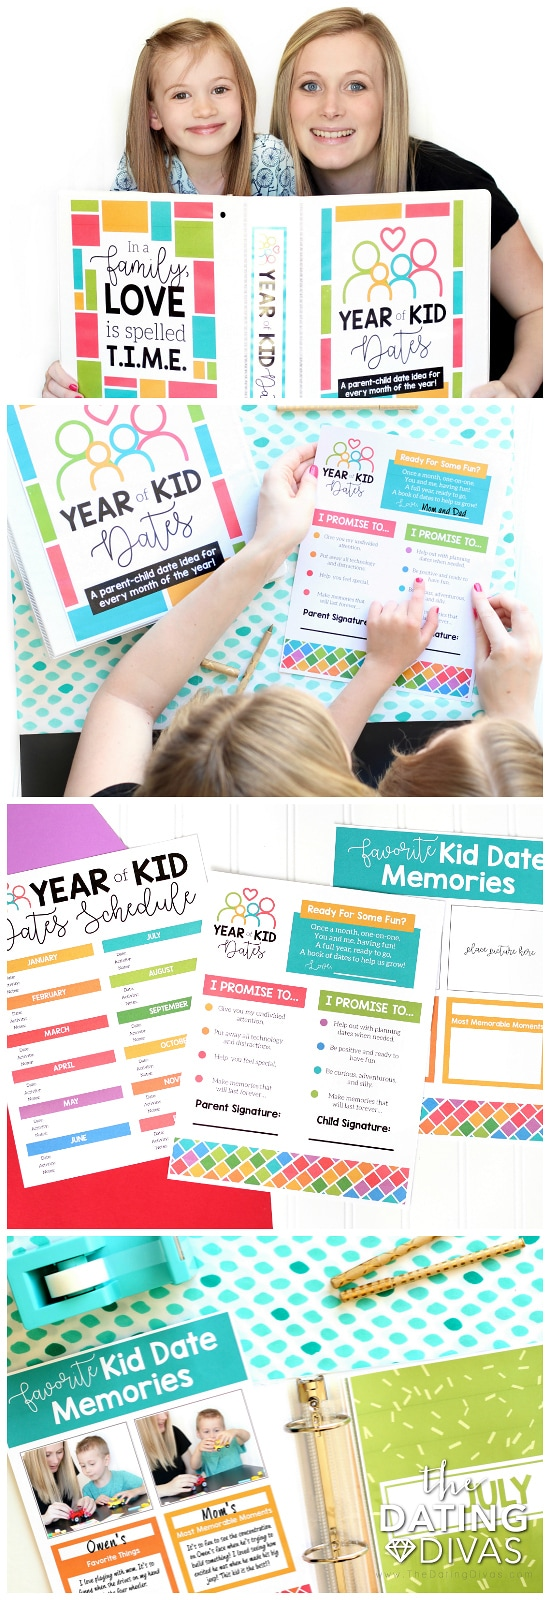 Year of Kid Date Ideas Binder